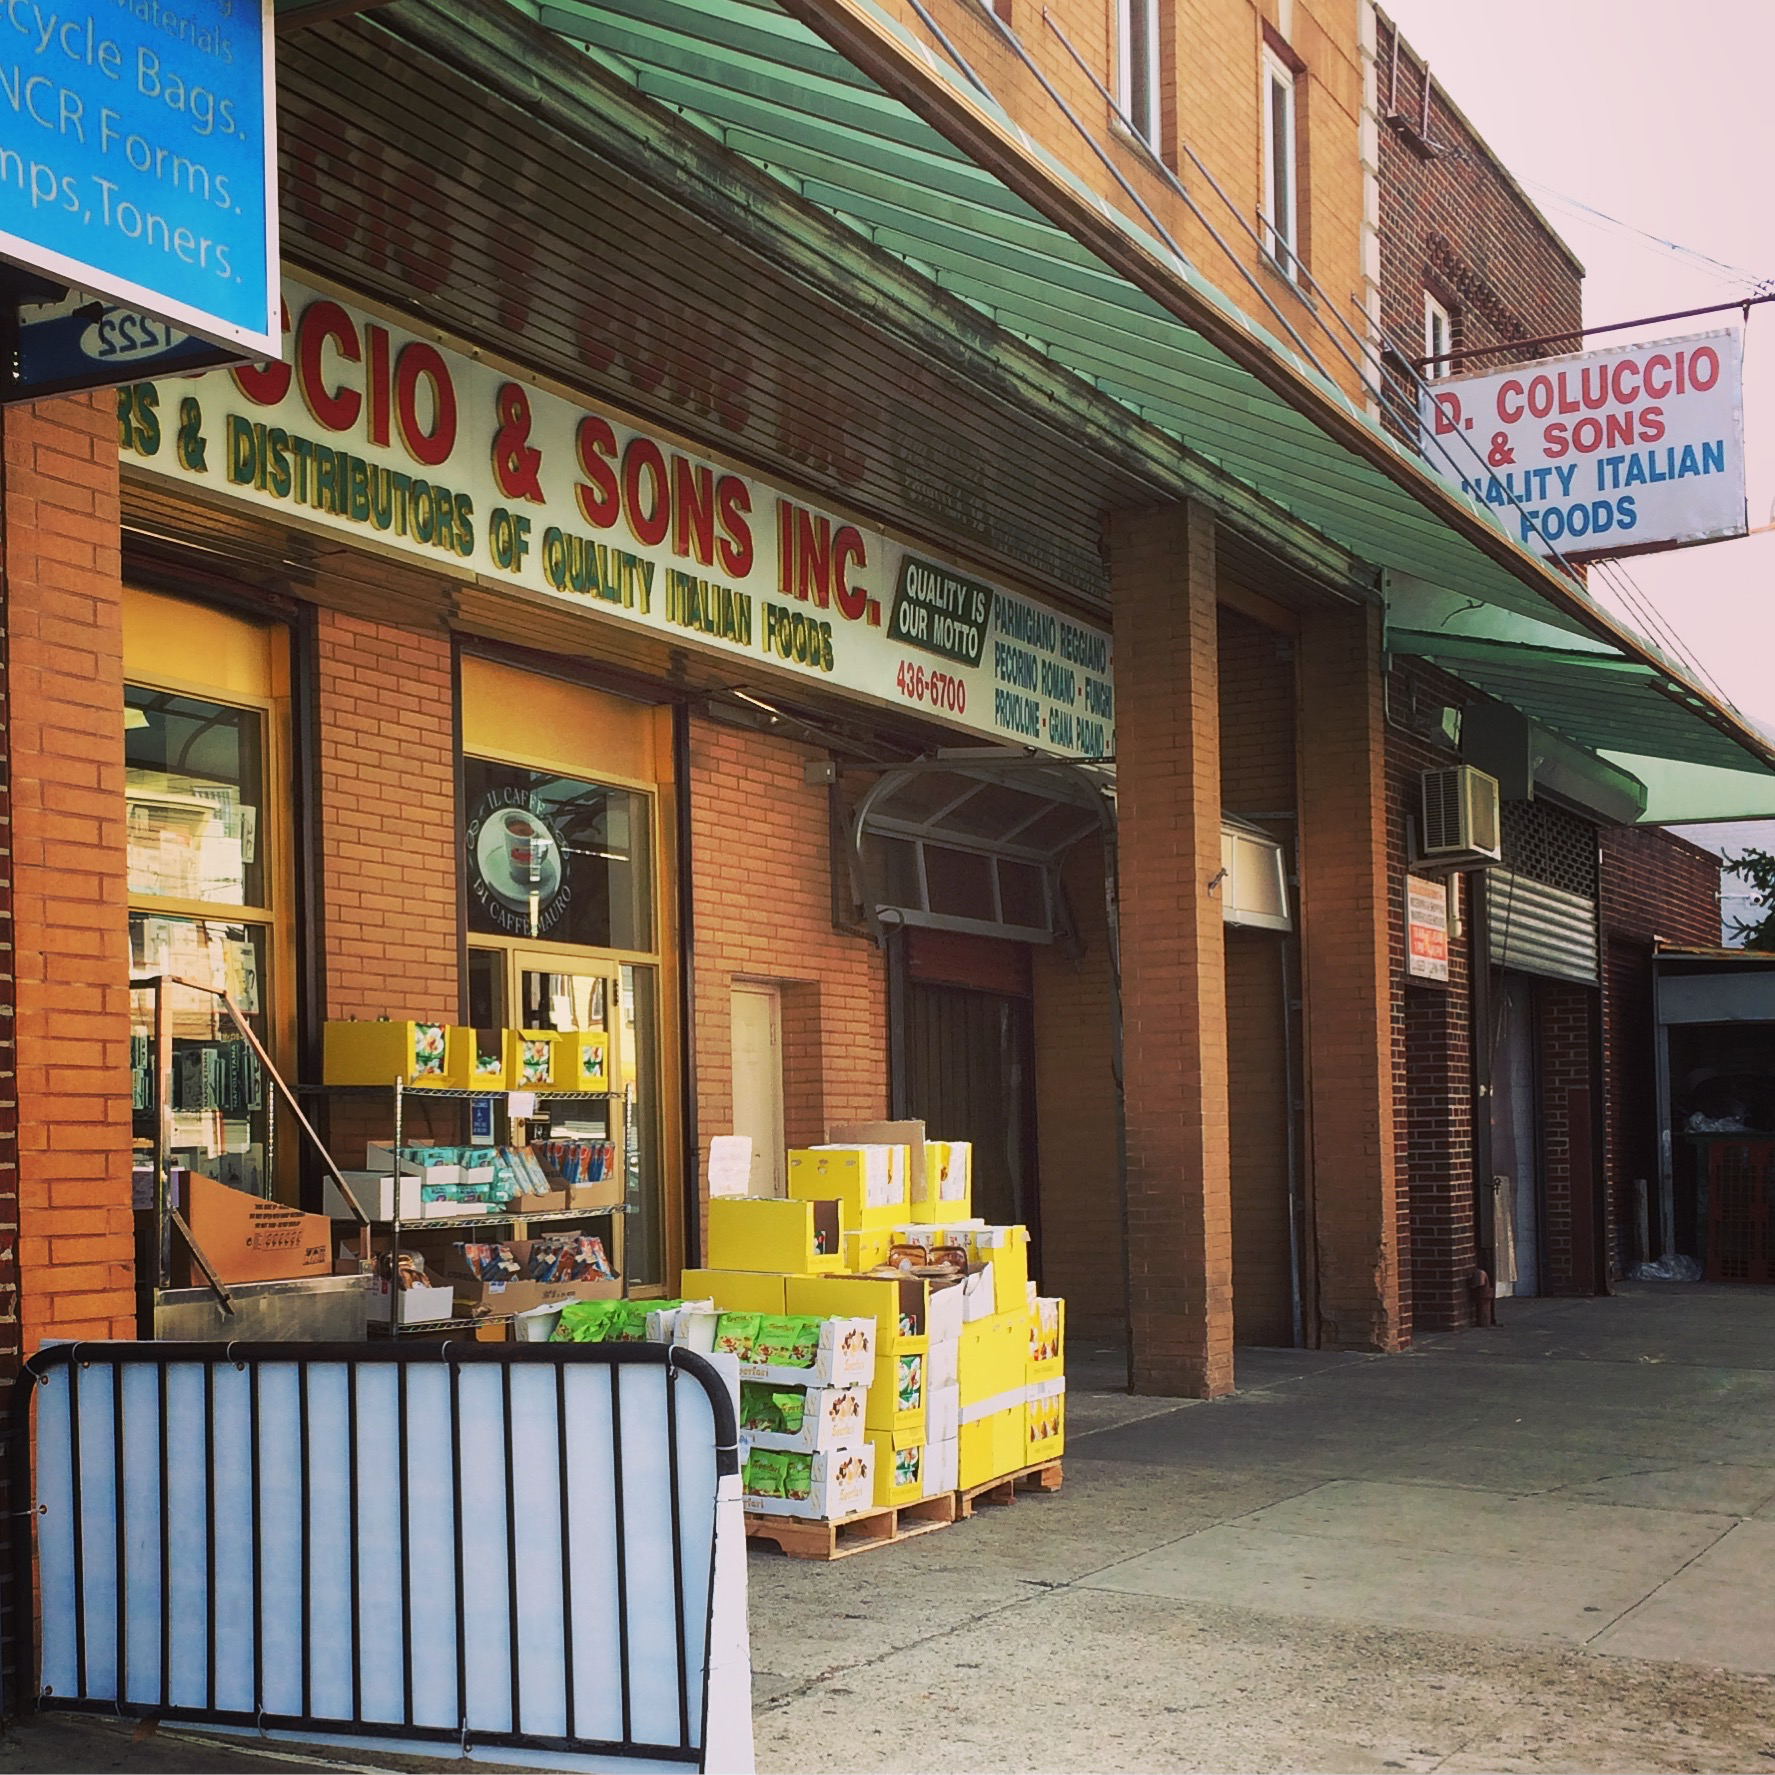 D. Coluccio & Sons storefront